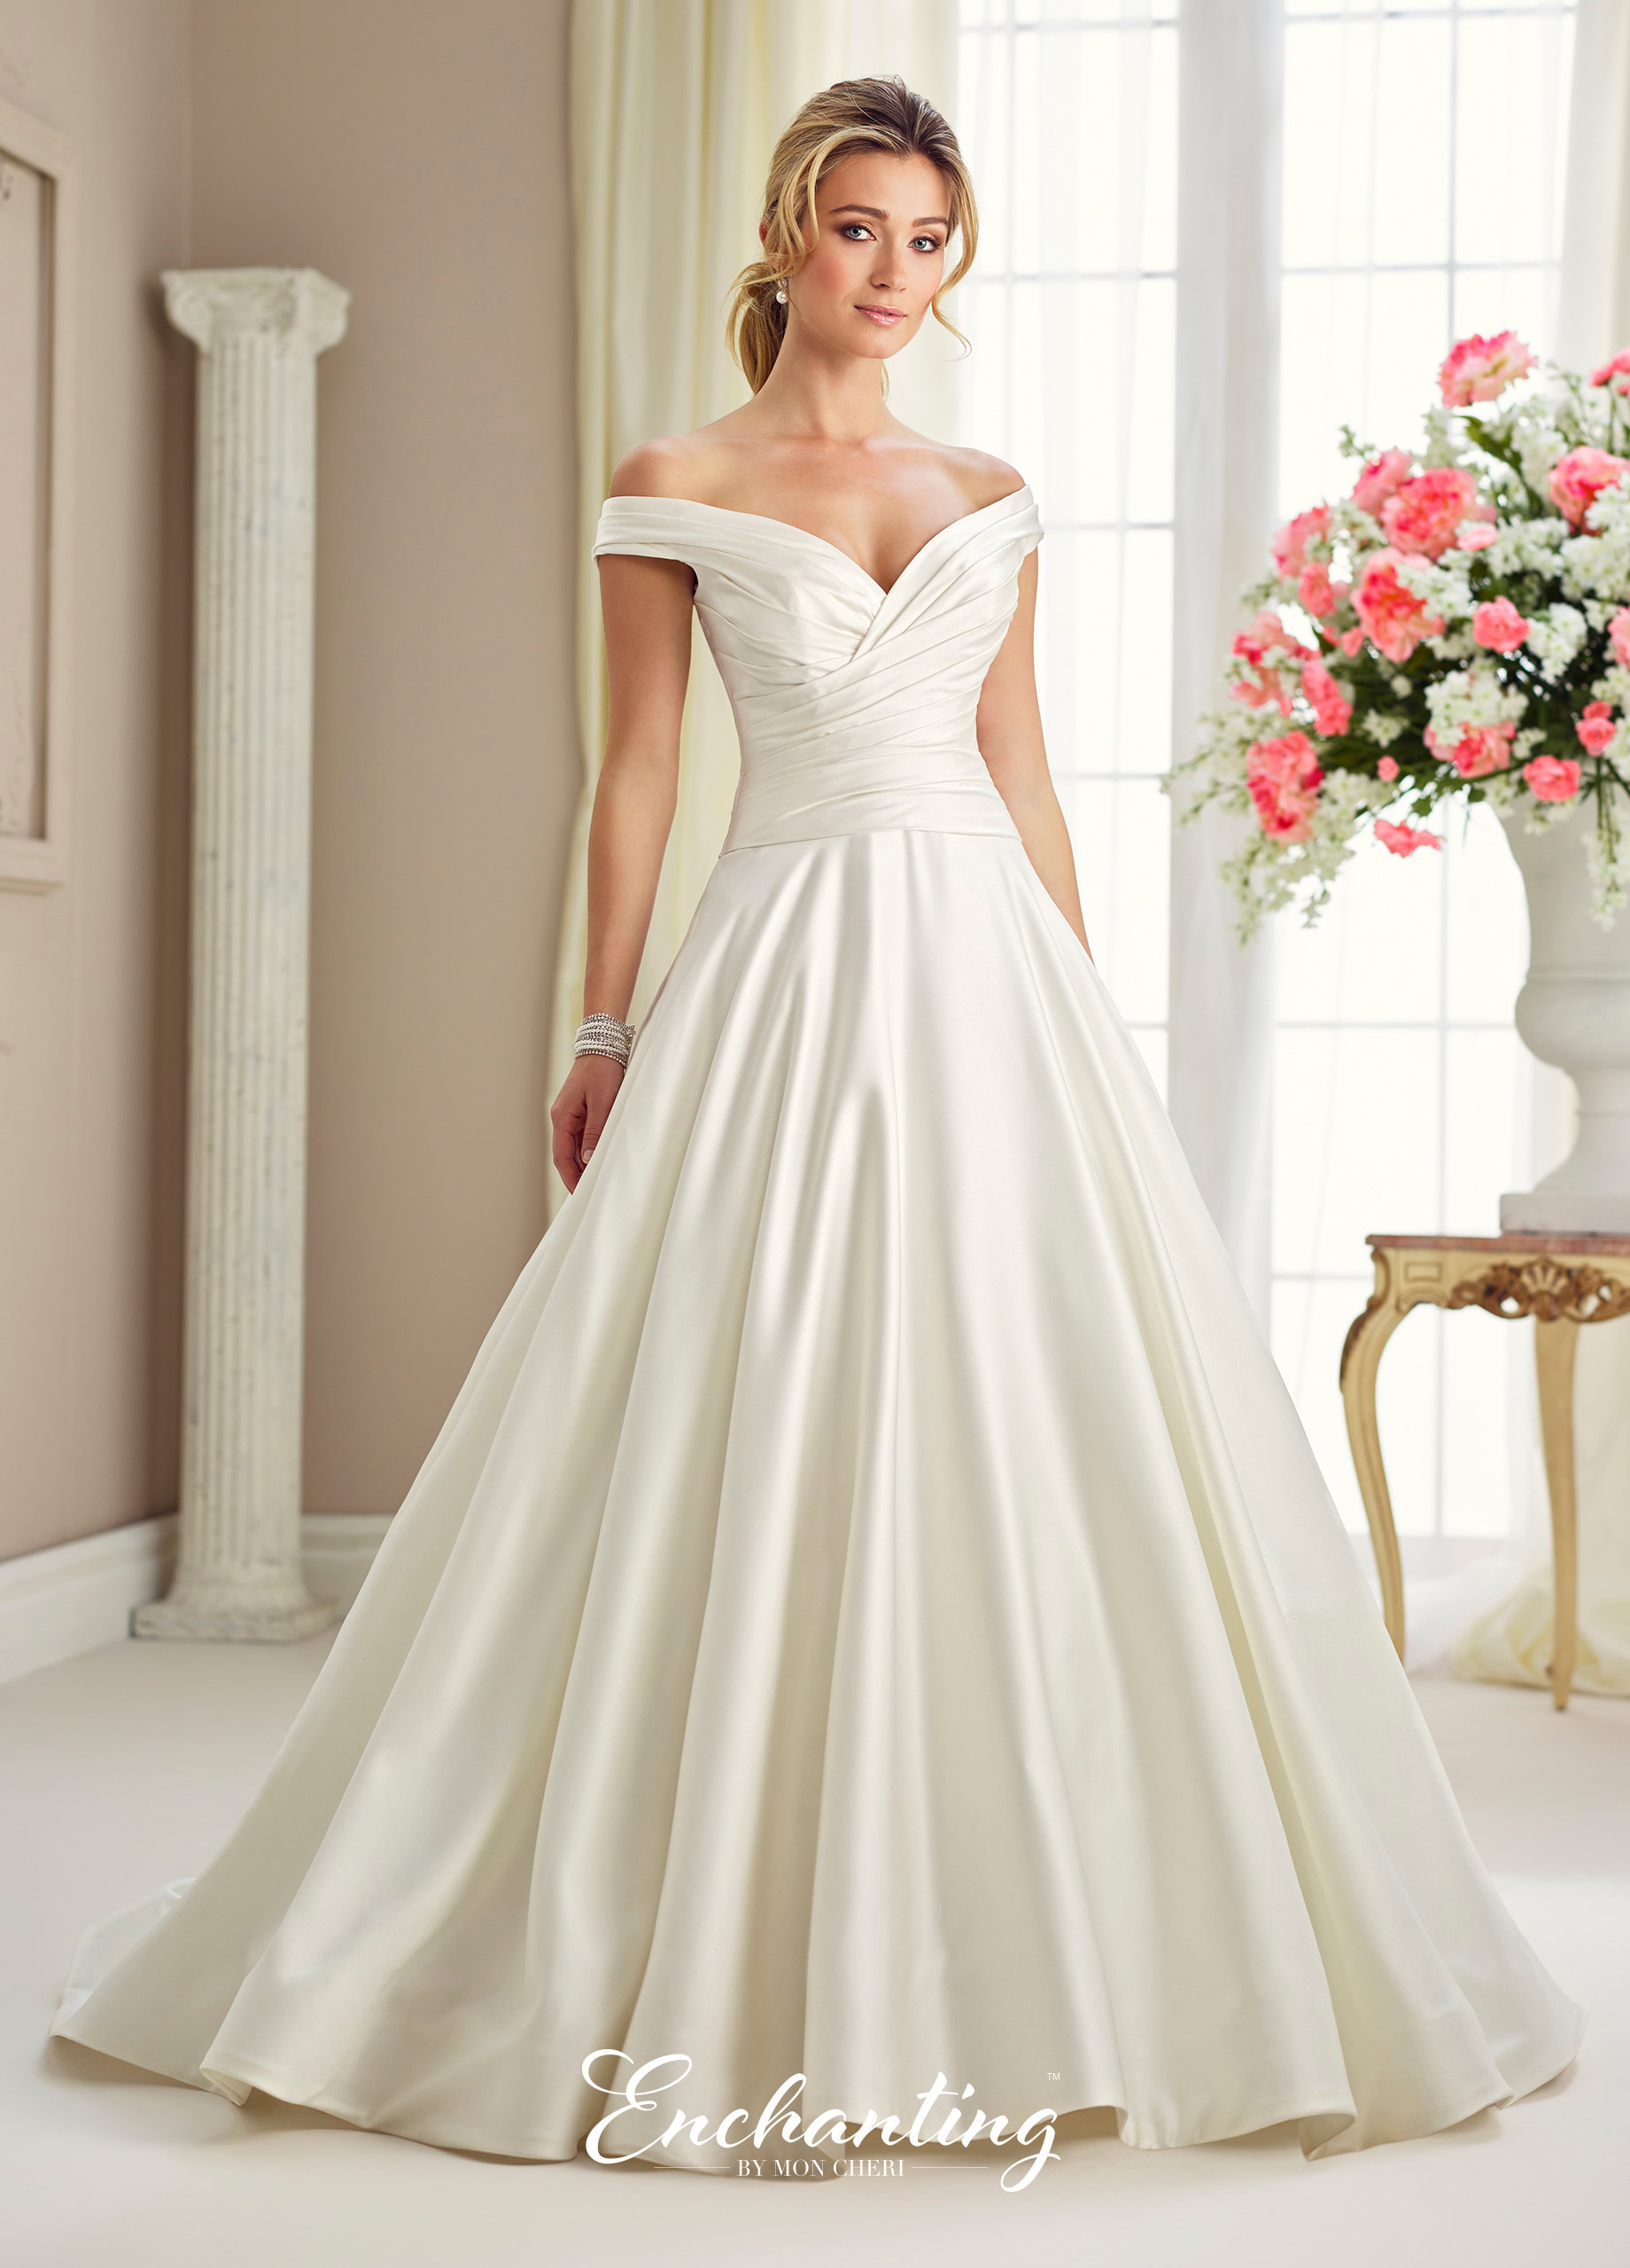 Shop Bridal Gowns Inspired by Jaqueline Kennedy\'s Wedding Dress ...